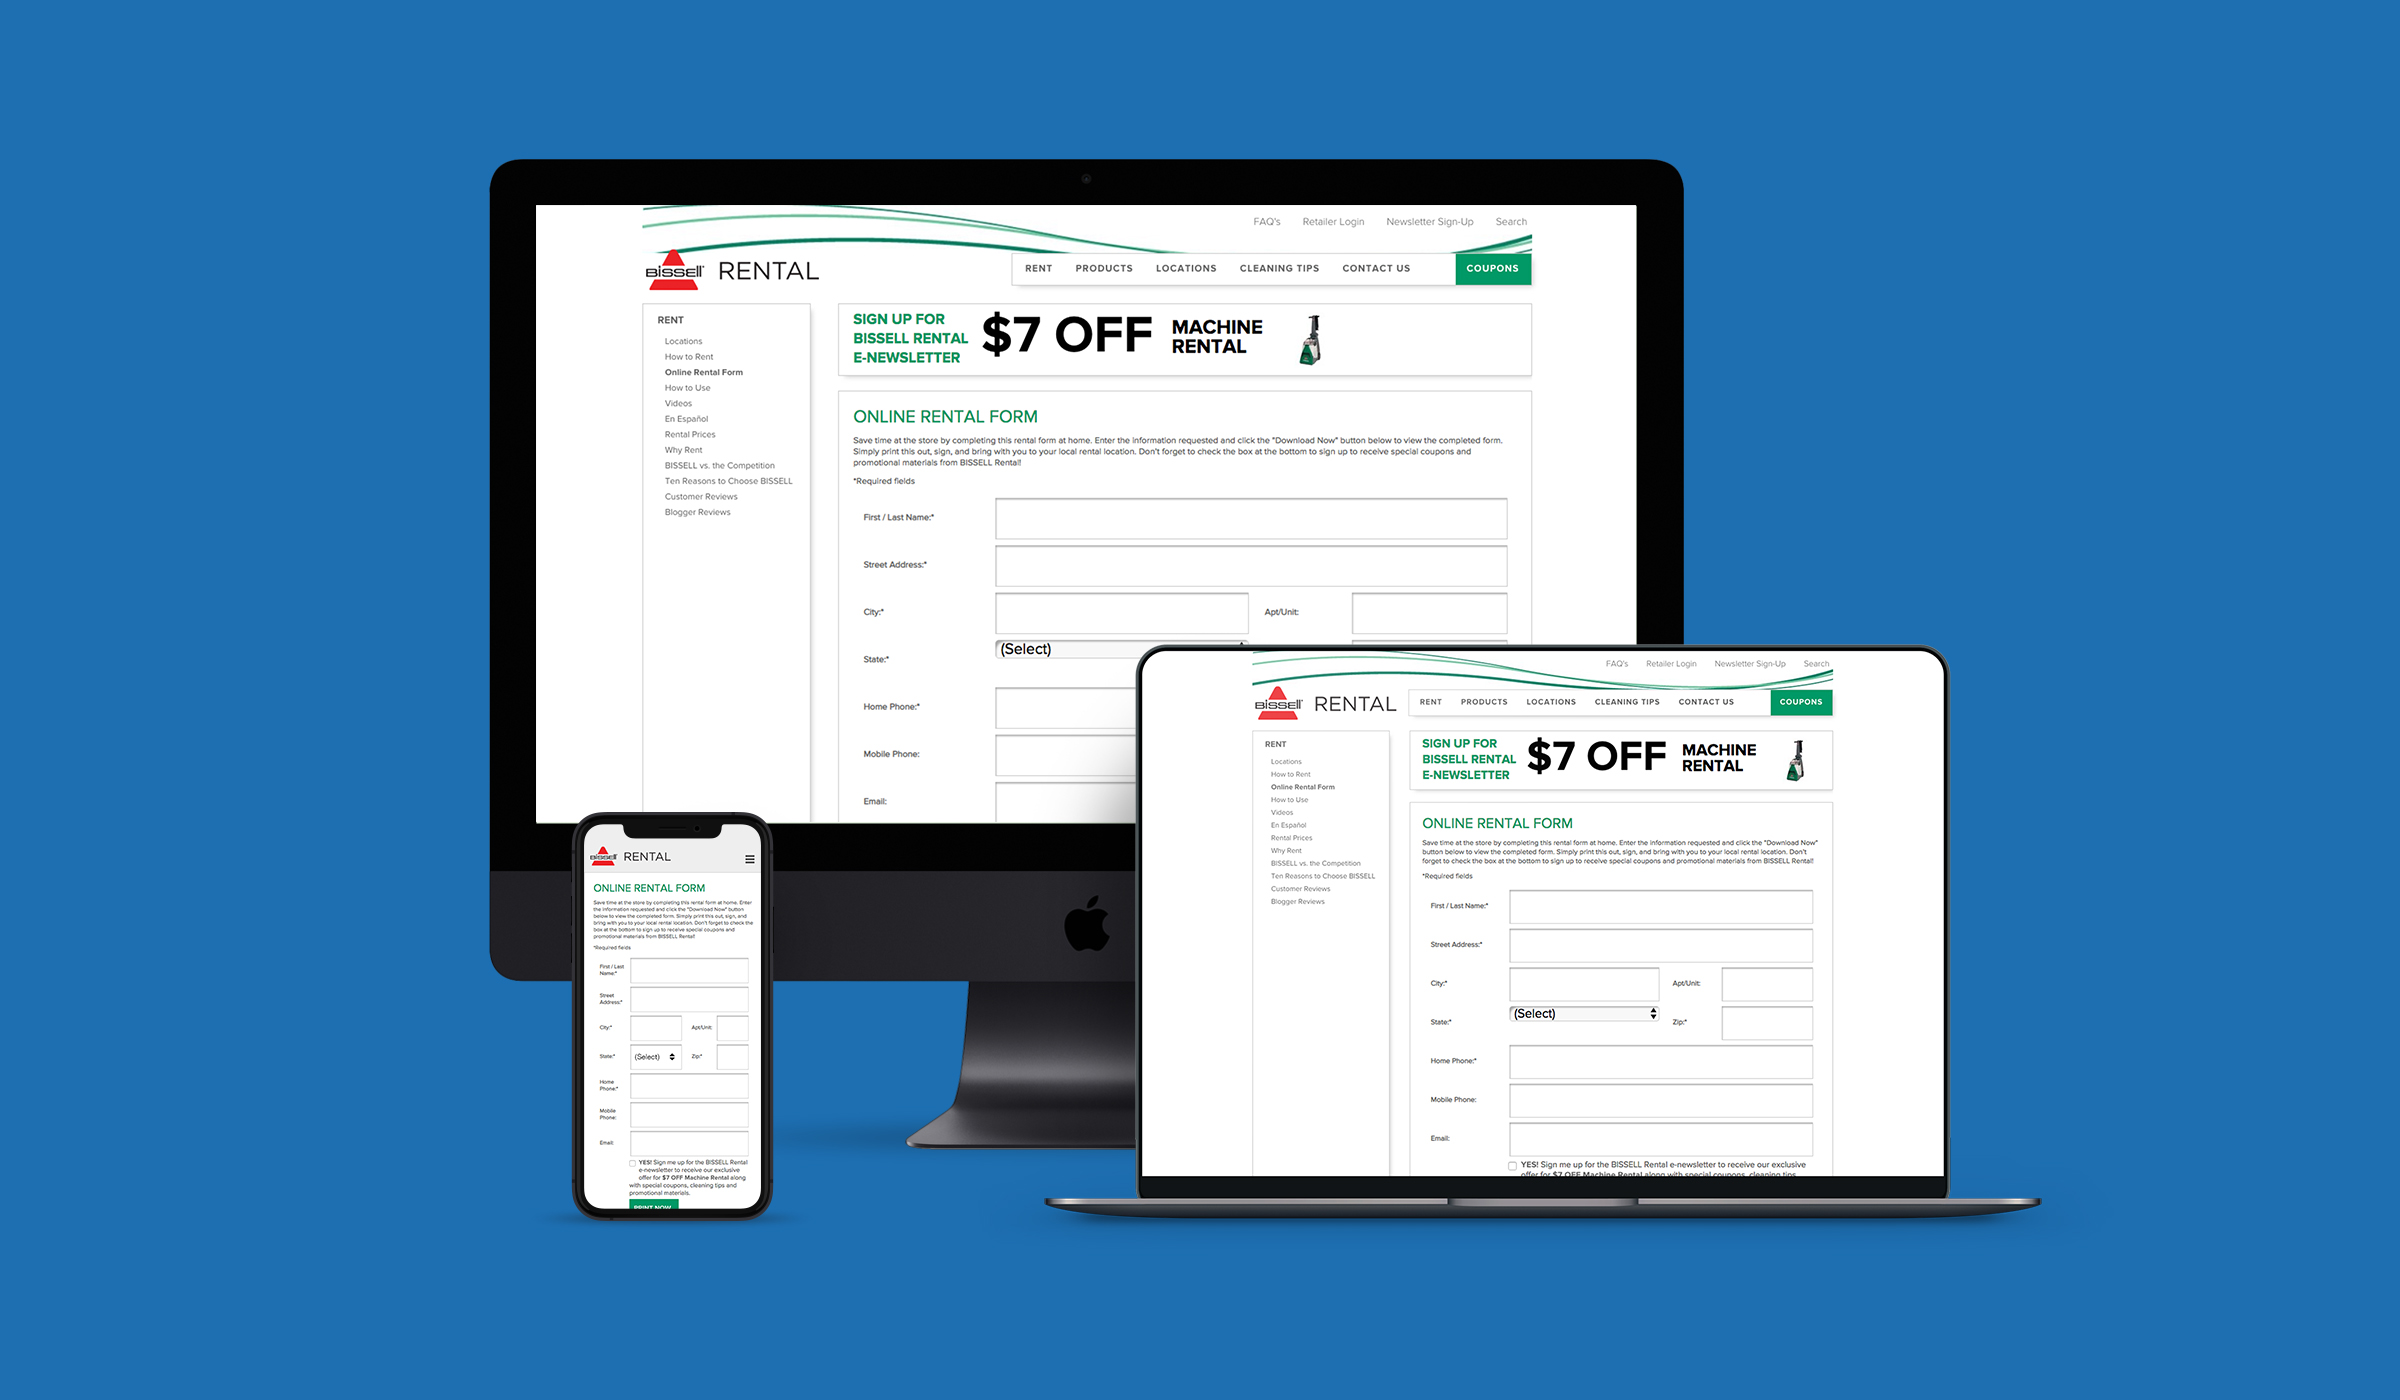 Bissell Online Rental Form Interface by Blue Flame Thinking